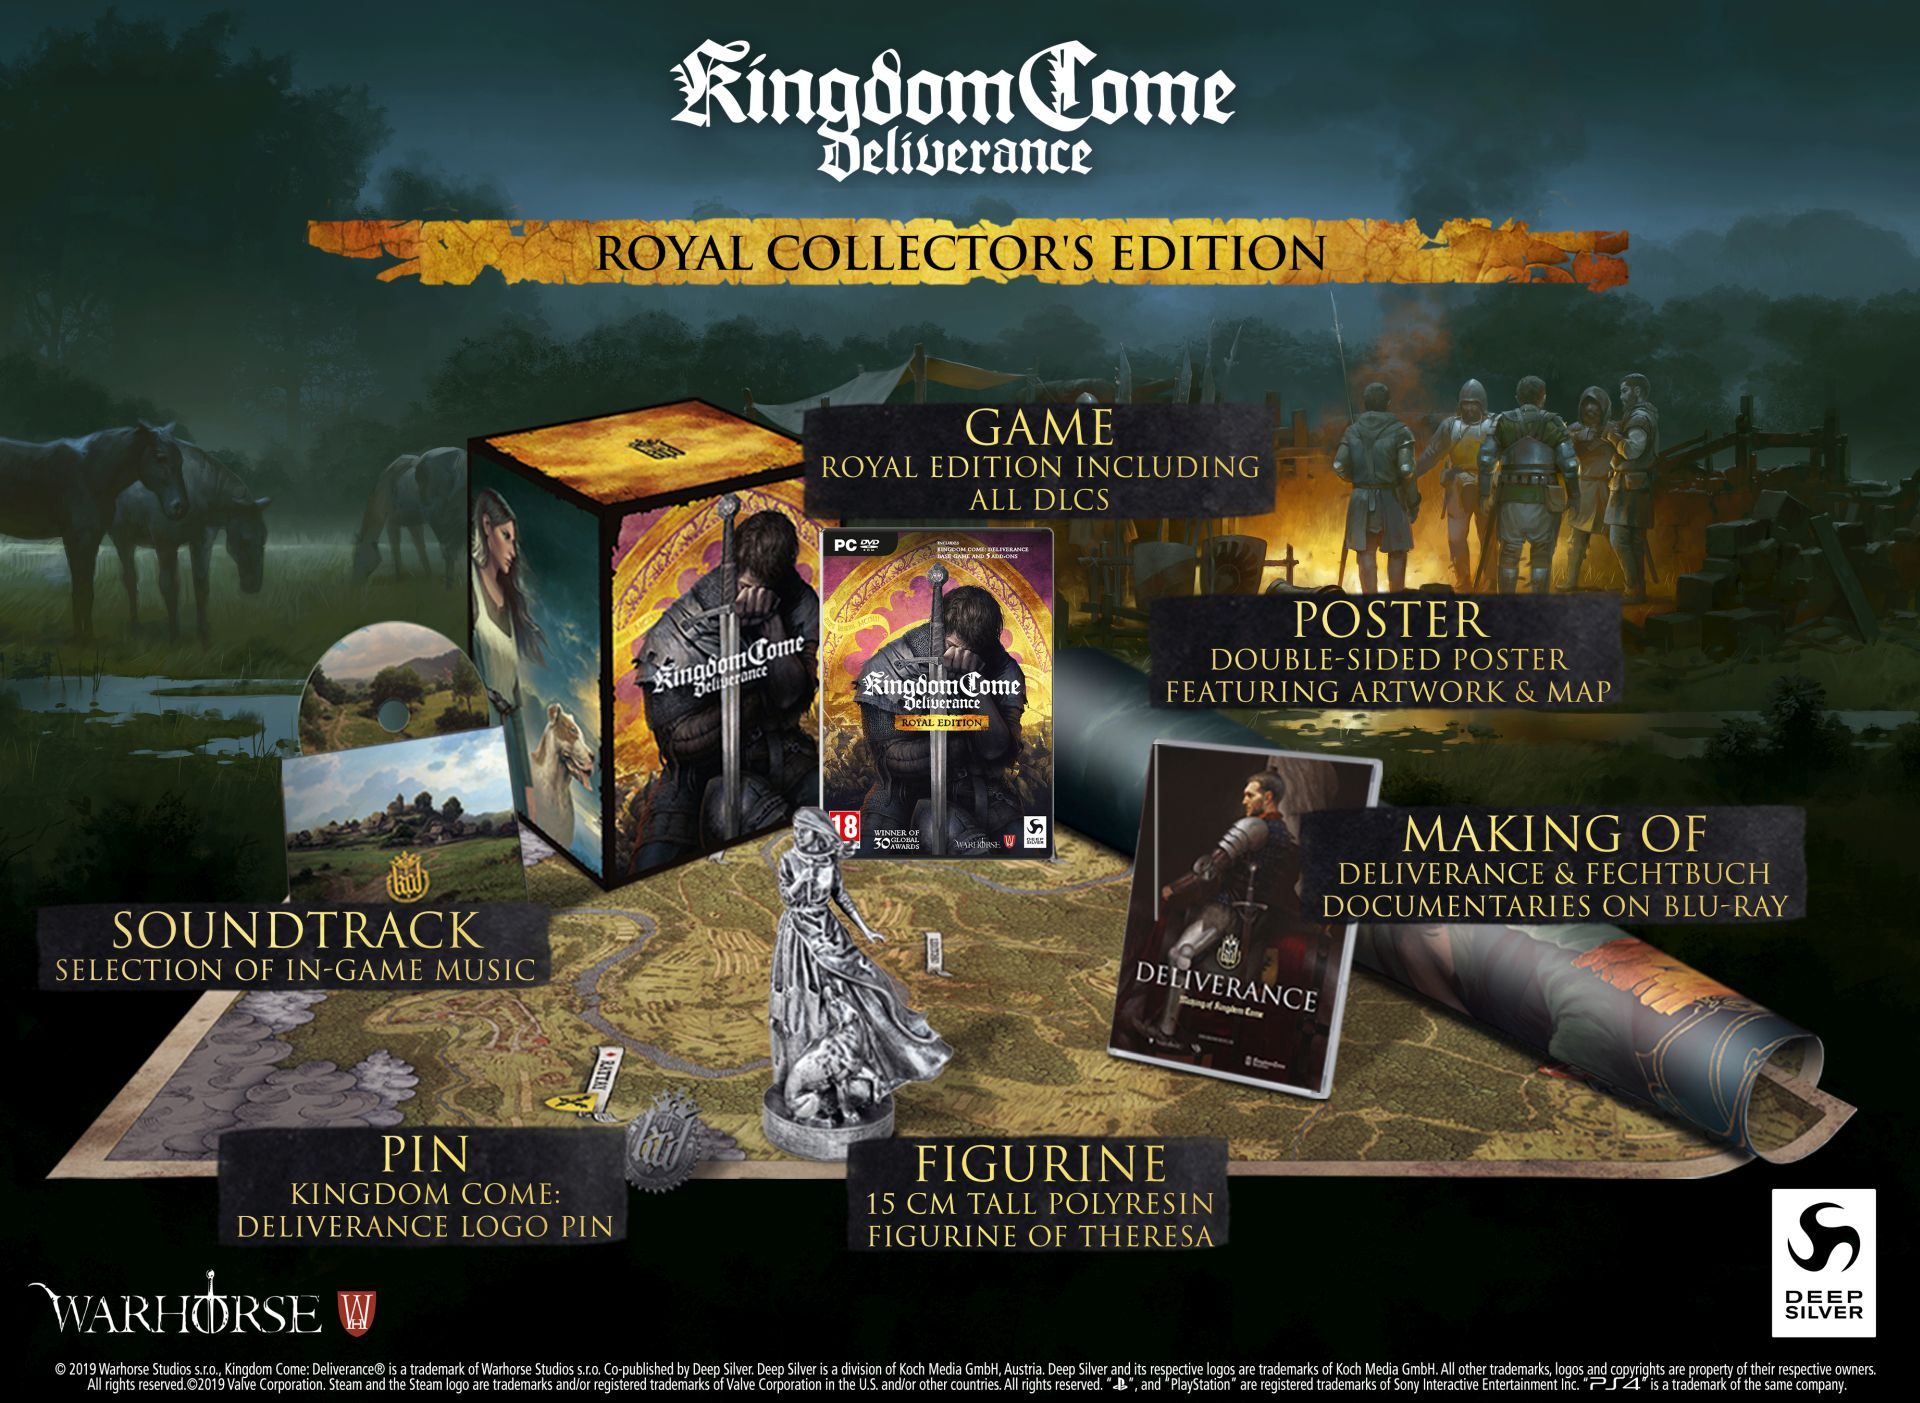 Kingdom Come Deliverance Royal Collector's Edition